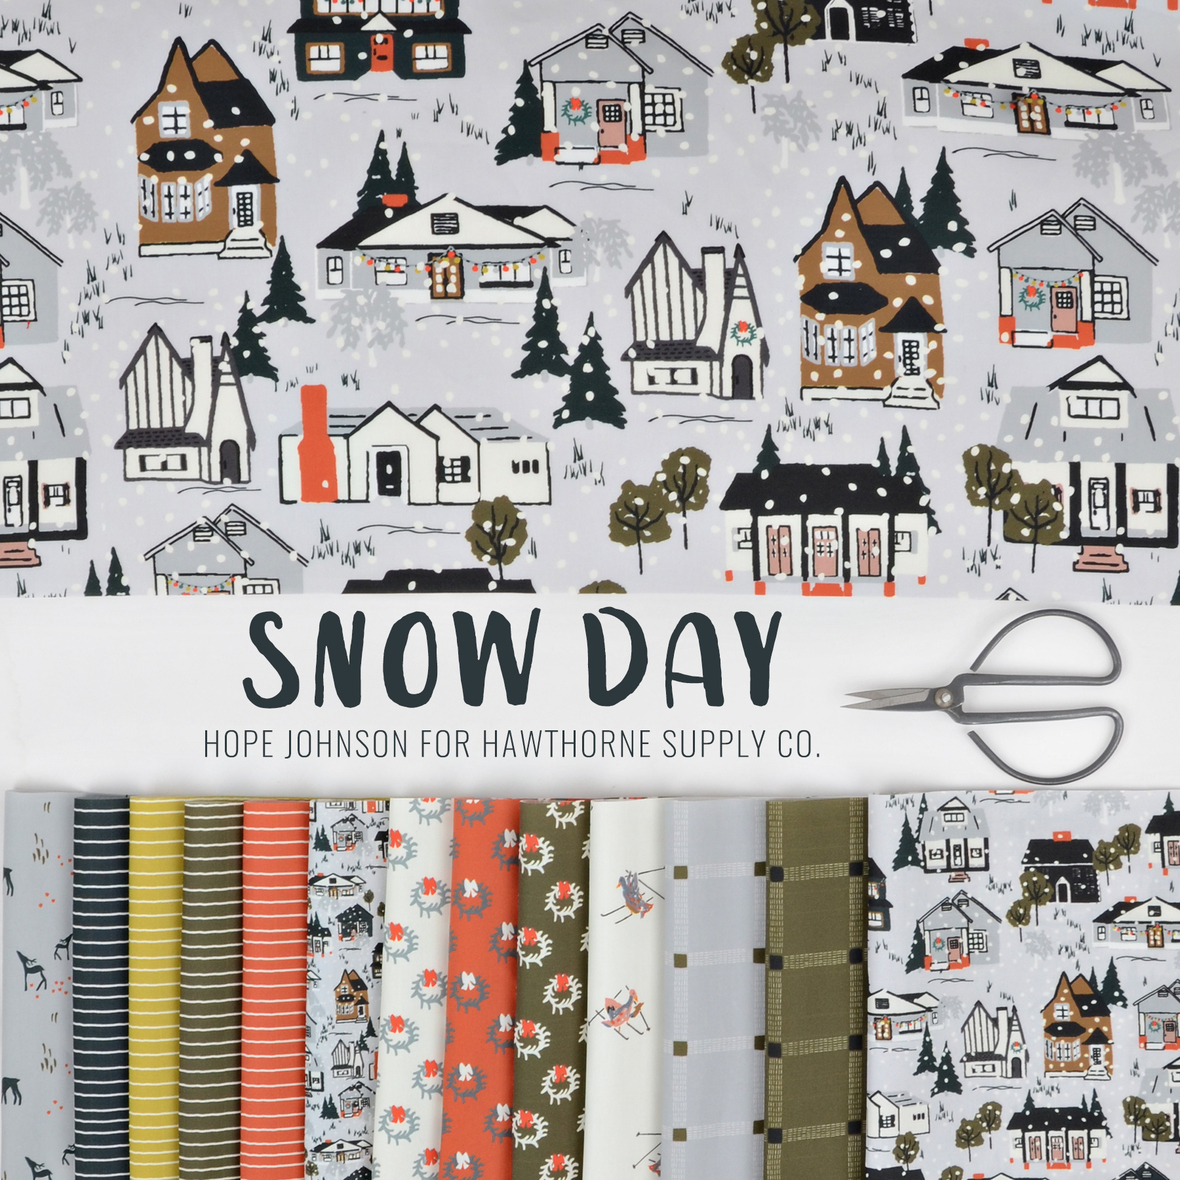 Snow Day by Hope Johnson for Hawthorne Supply Co Christmas fabric